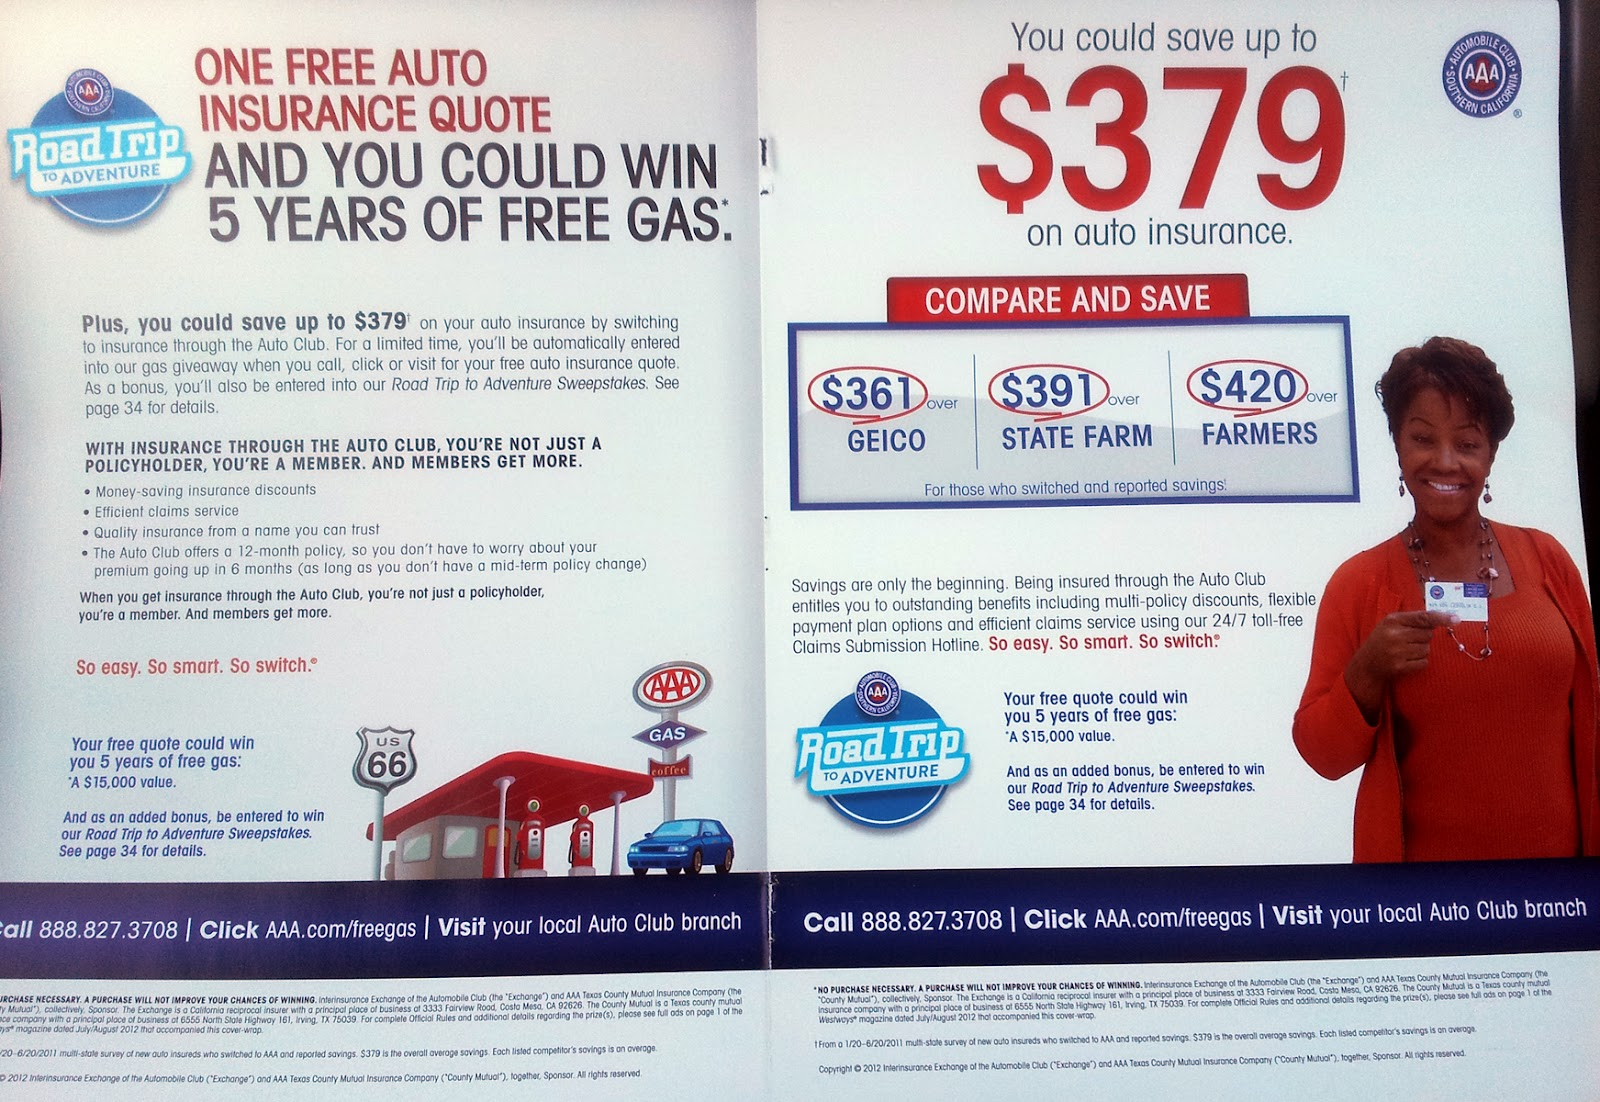 AAA Car Insurance Wants You To Get A Quote, And Will Enter